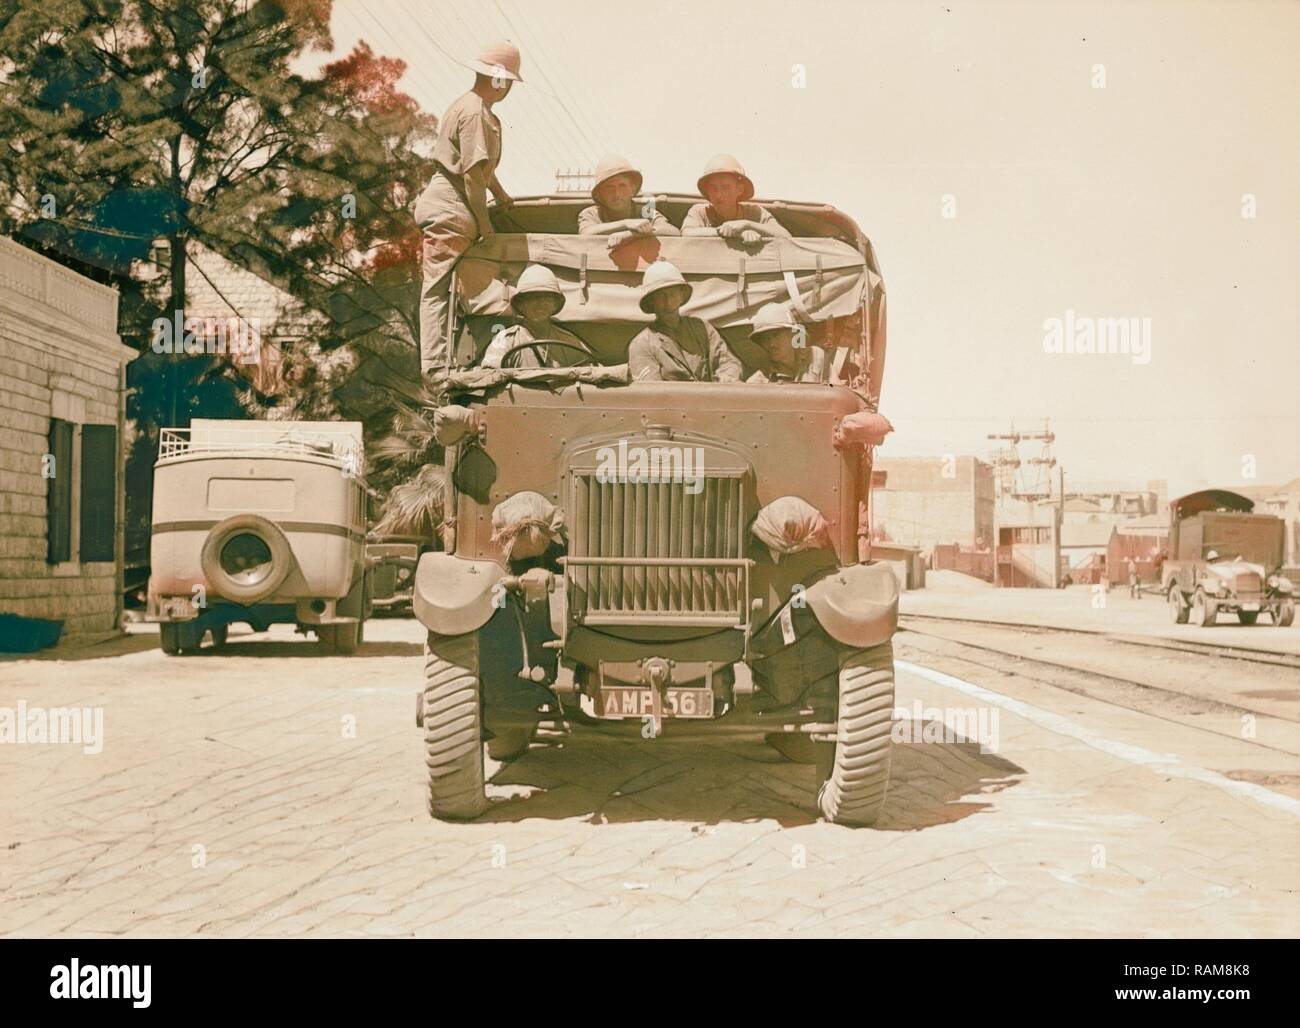 Palestine disturbances 1936. Army lorry, one of the many brought on above mentioned ships. 1936. Reimagined - Stock Image